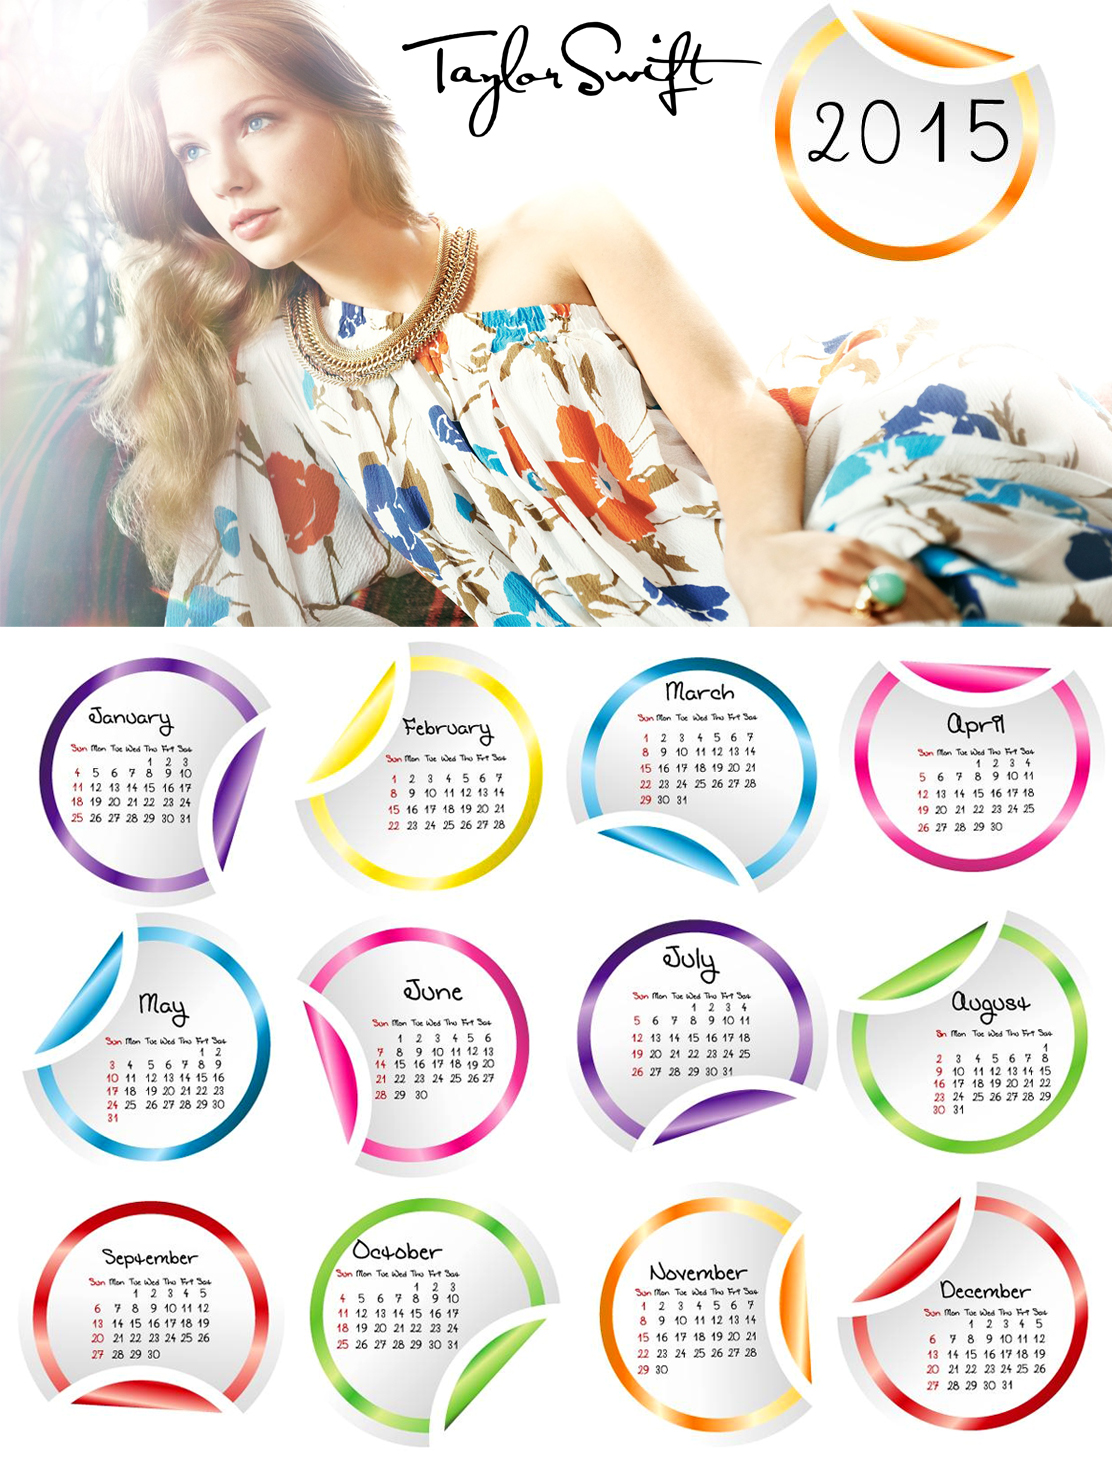 Taylor Swift Signed Wallpaper Calendar 2015